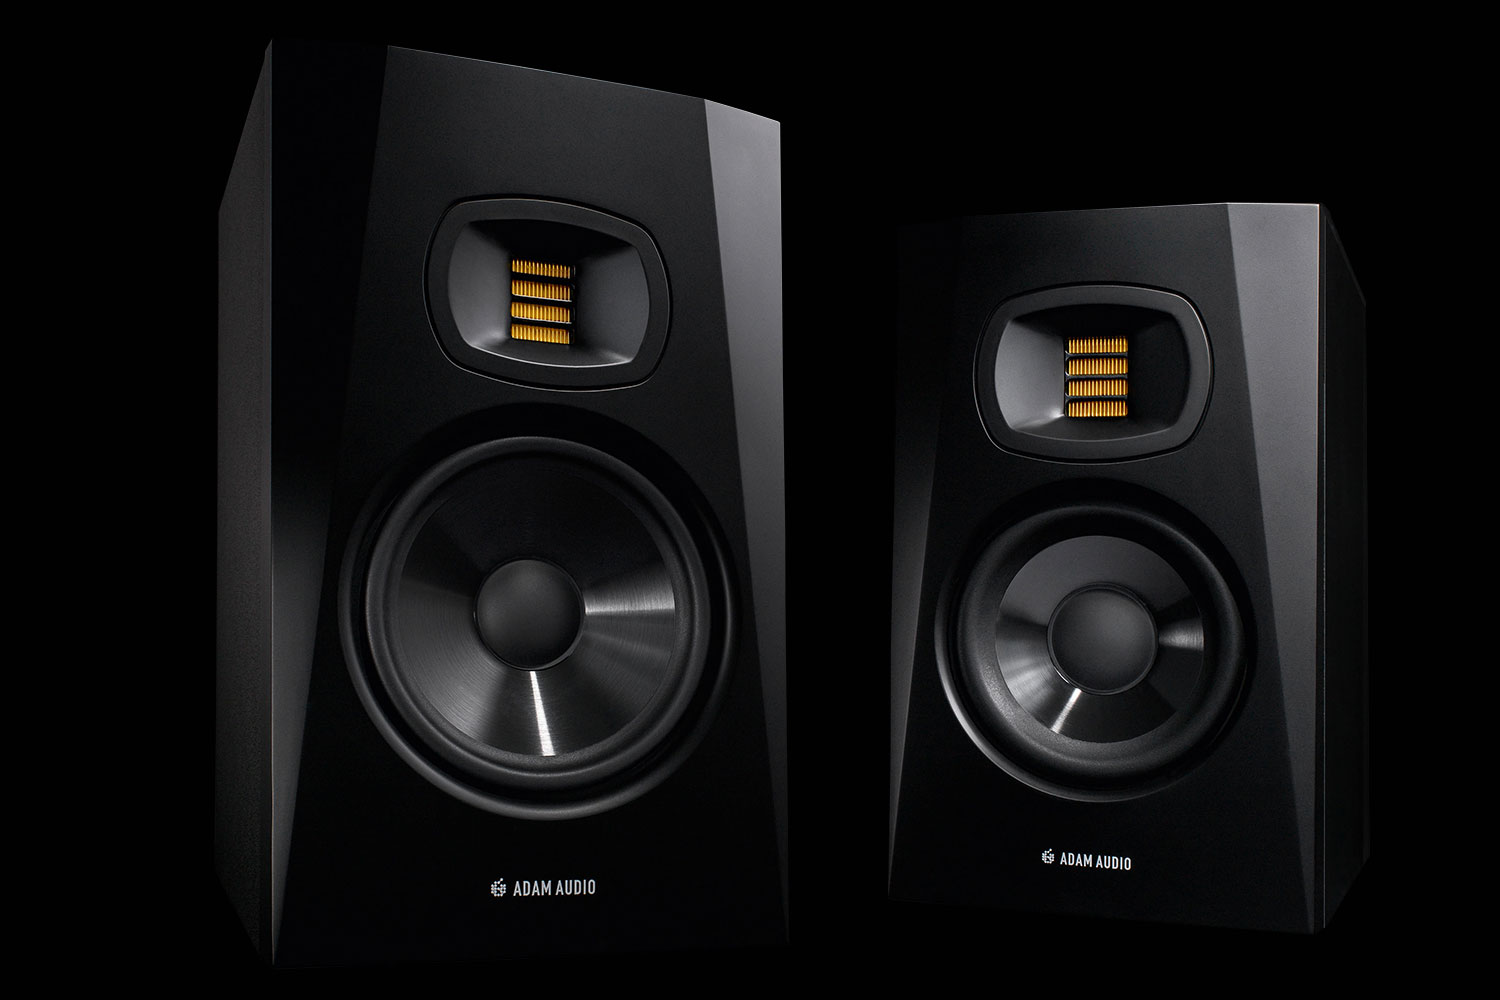 adam audio download the t series user manuals here. Black Bedroom Furniture Sets. Home Design Ideas